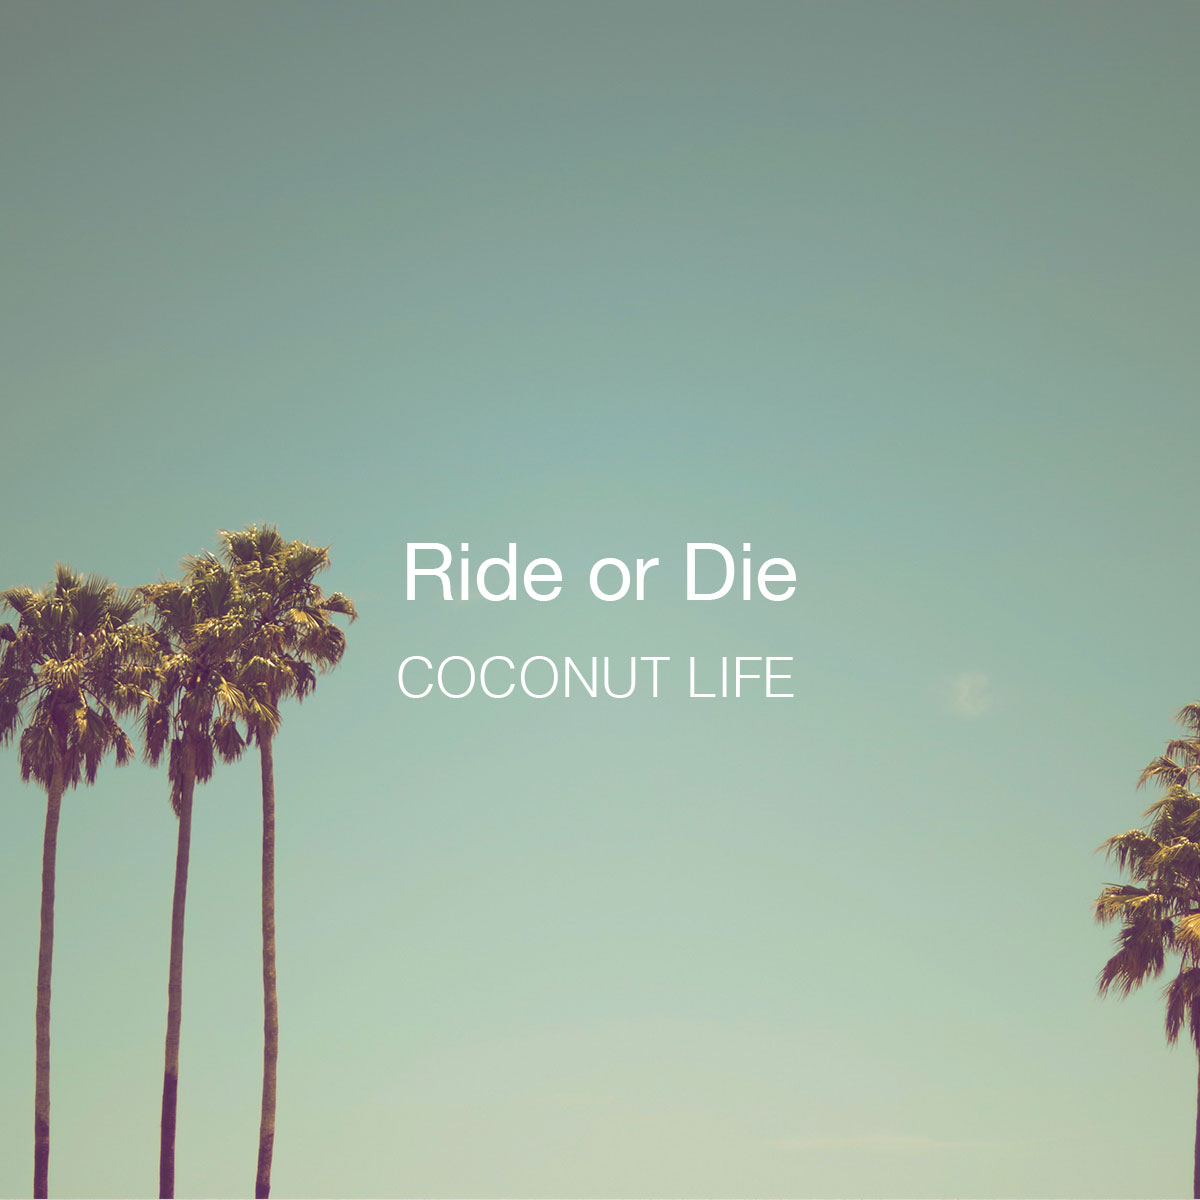 Ride-or-Die